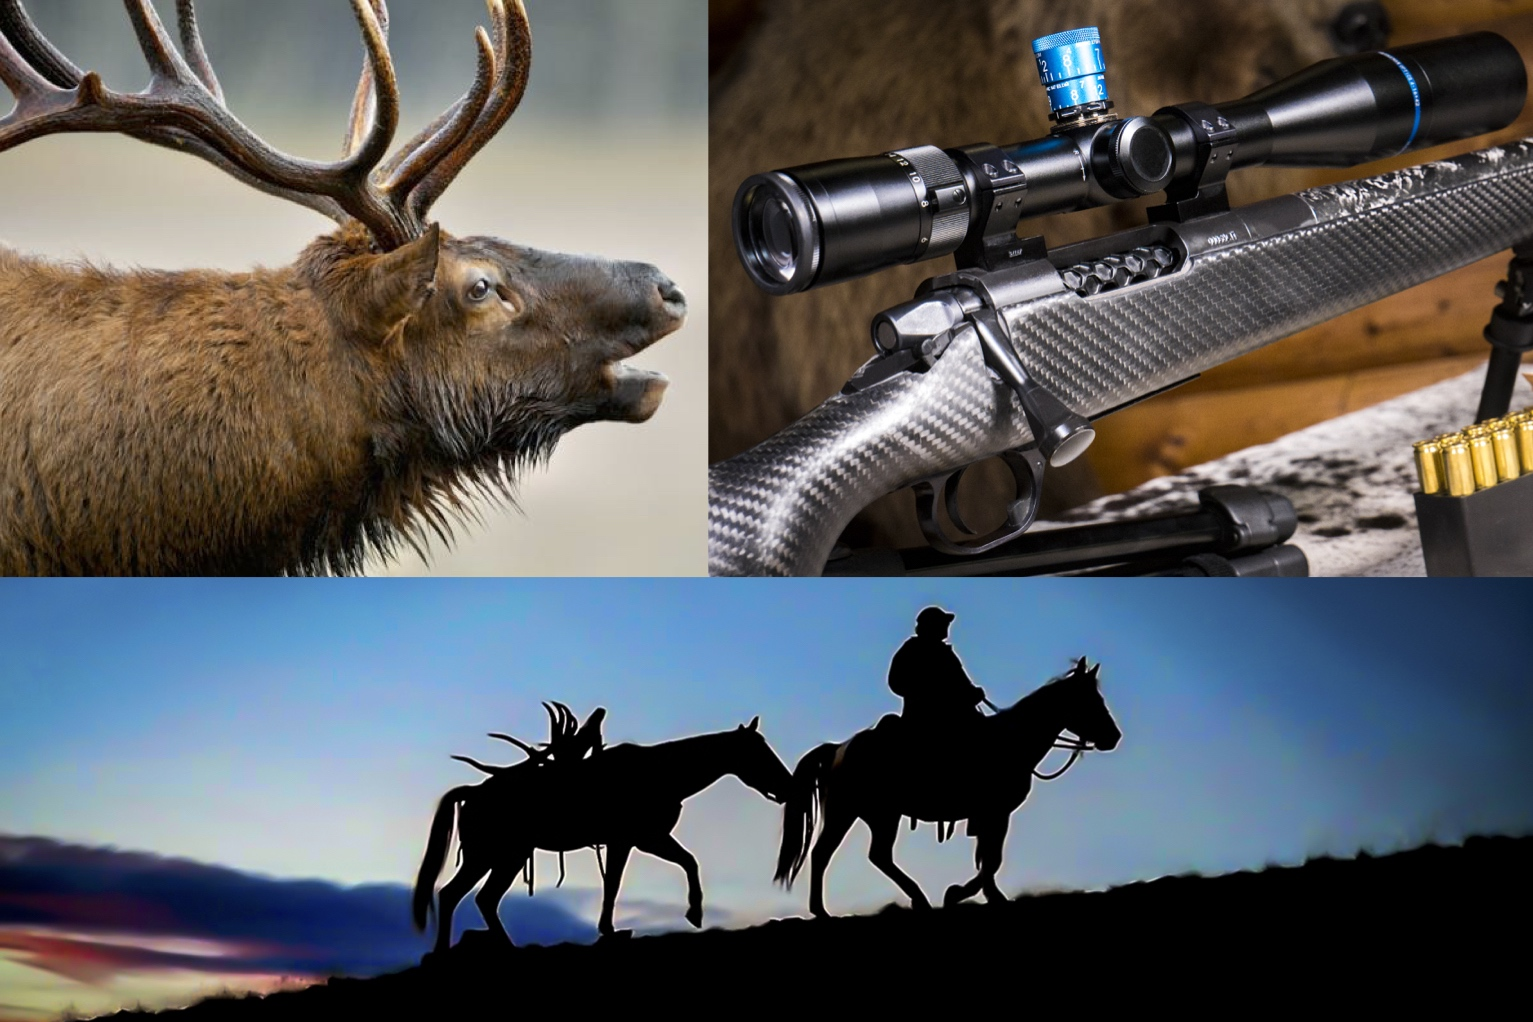 Grand Prize - The Grand Prize winner will have the opportunity to participate in the fall 2019 rifle elk hunt on North Cumberland WMA in the premier Elk Hunting Zone 1. The Grand Prize winner will also receive The Best of the West Mountain Scout Rifle in 6.5 PRC topped with a Huskemaw 4-16x42 Blue Diamond long range scope. (Valued at $8,900) But that's not all, the winner can have their elk hunt filmed for an episode of The Best of the West outdoor television series.